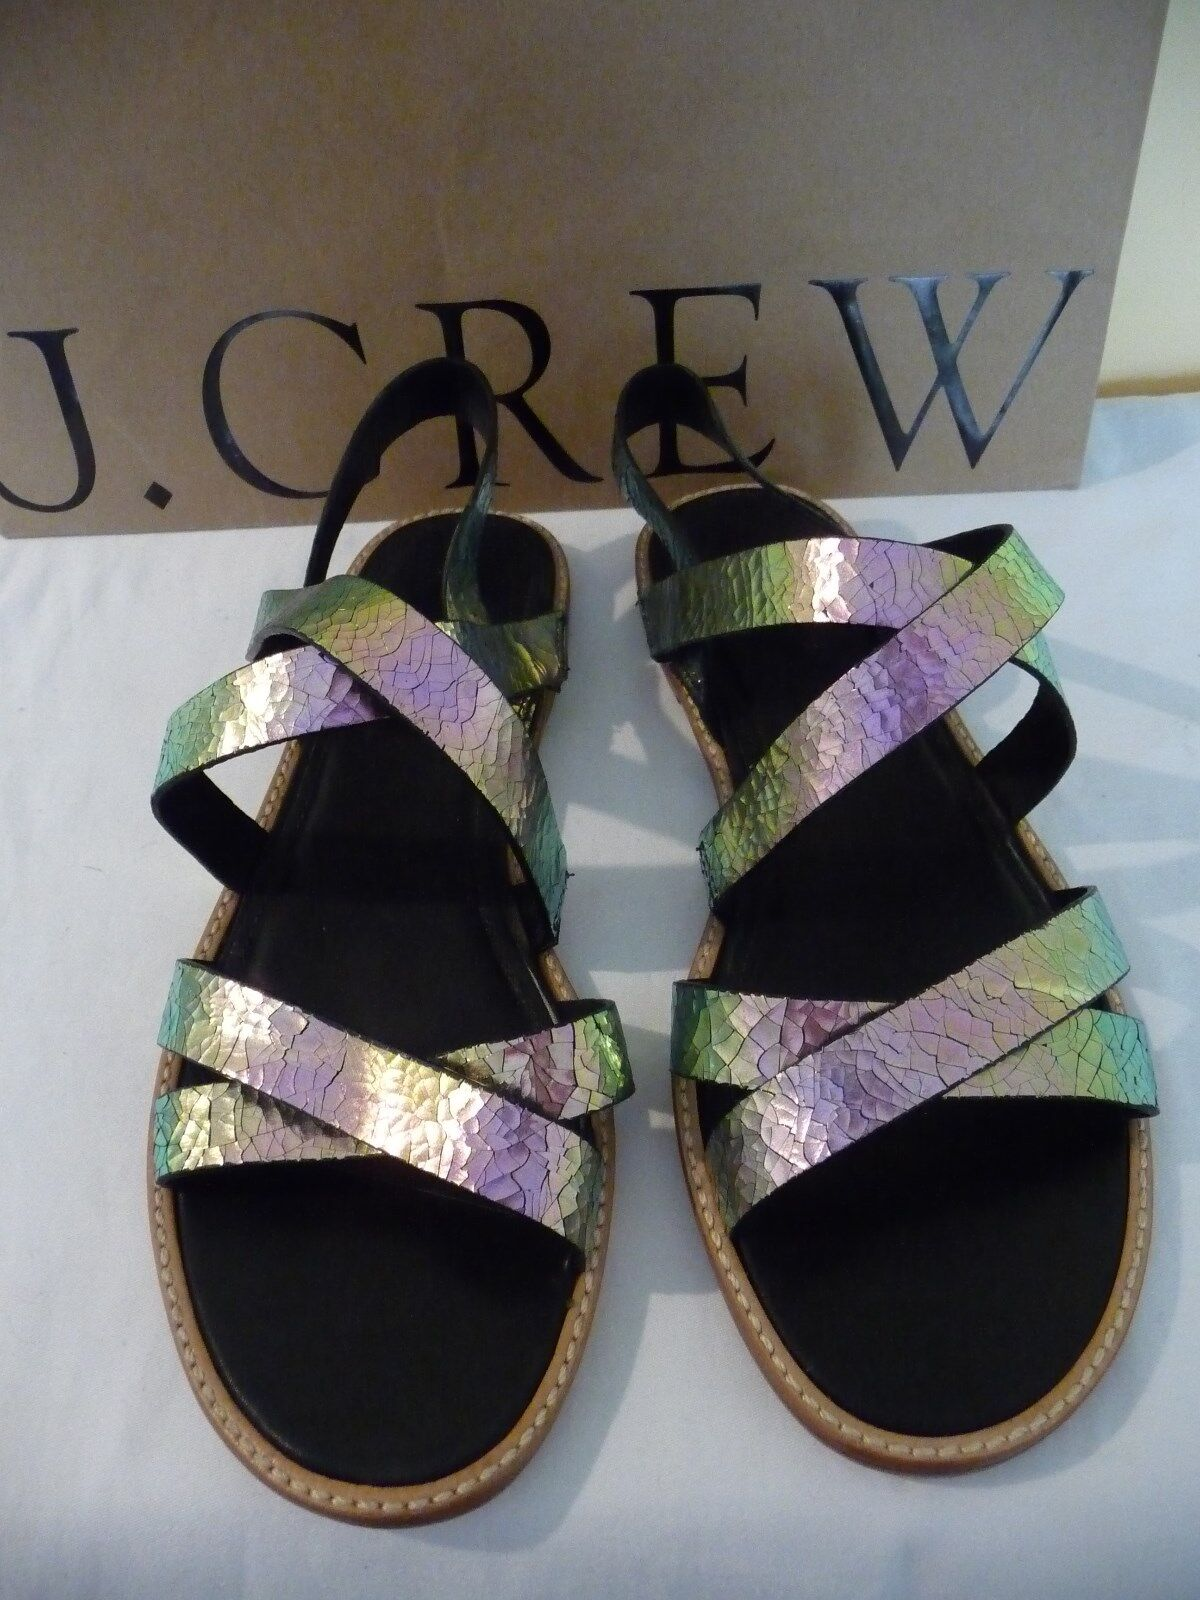 NEW J.CREW MACKENZIE CRACLED FOIL SANDALS, C7271, SIZE 7, gold,  138